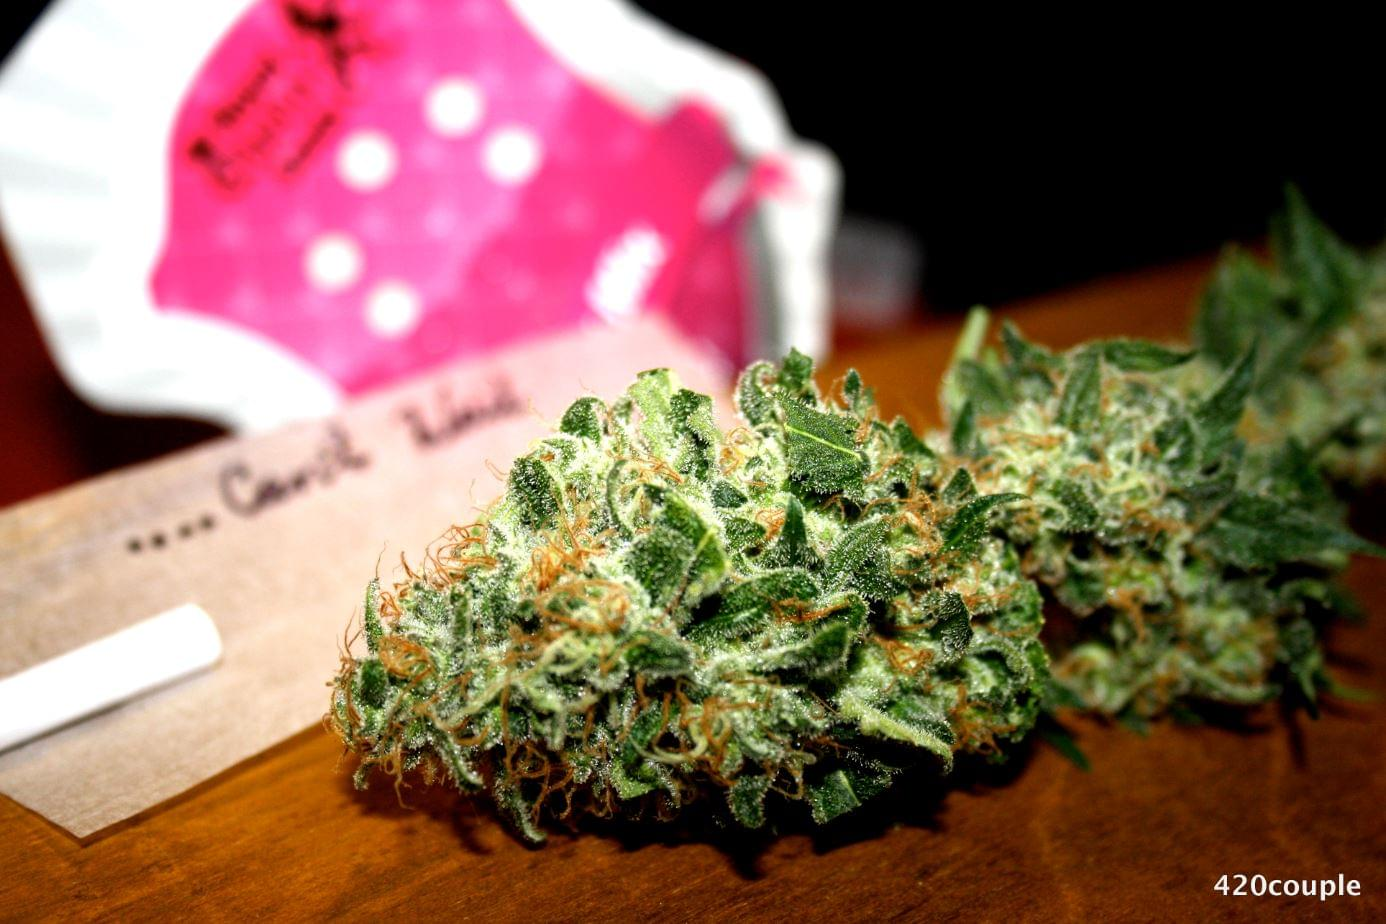 Winning picture: White Widow from 420 Couple